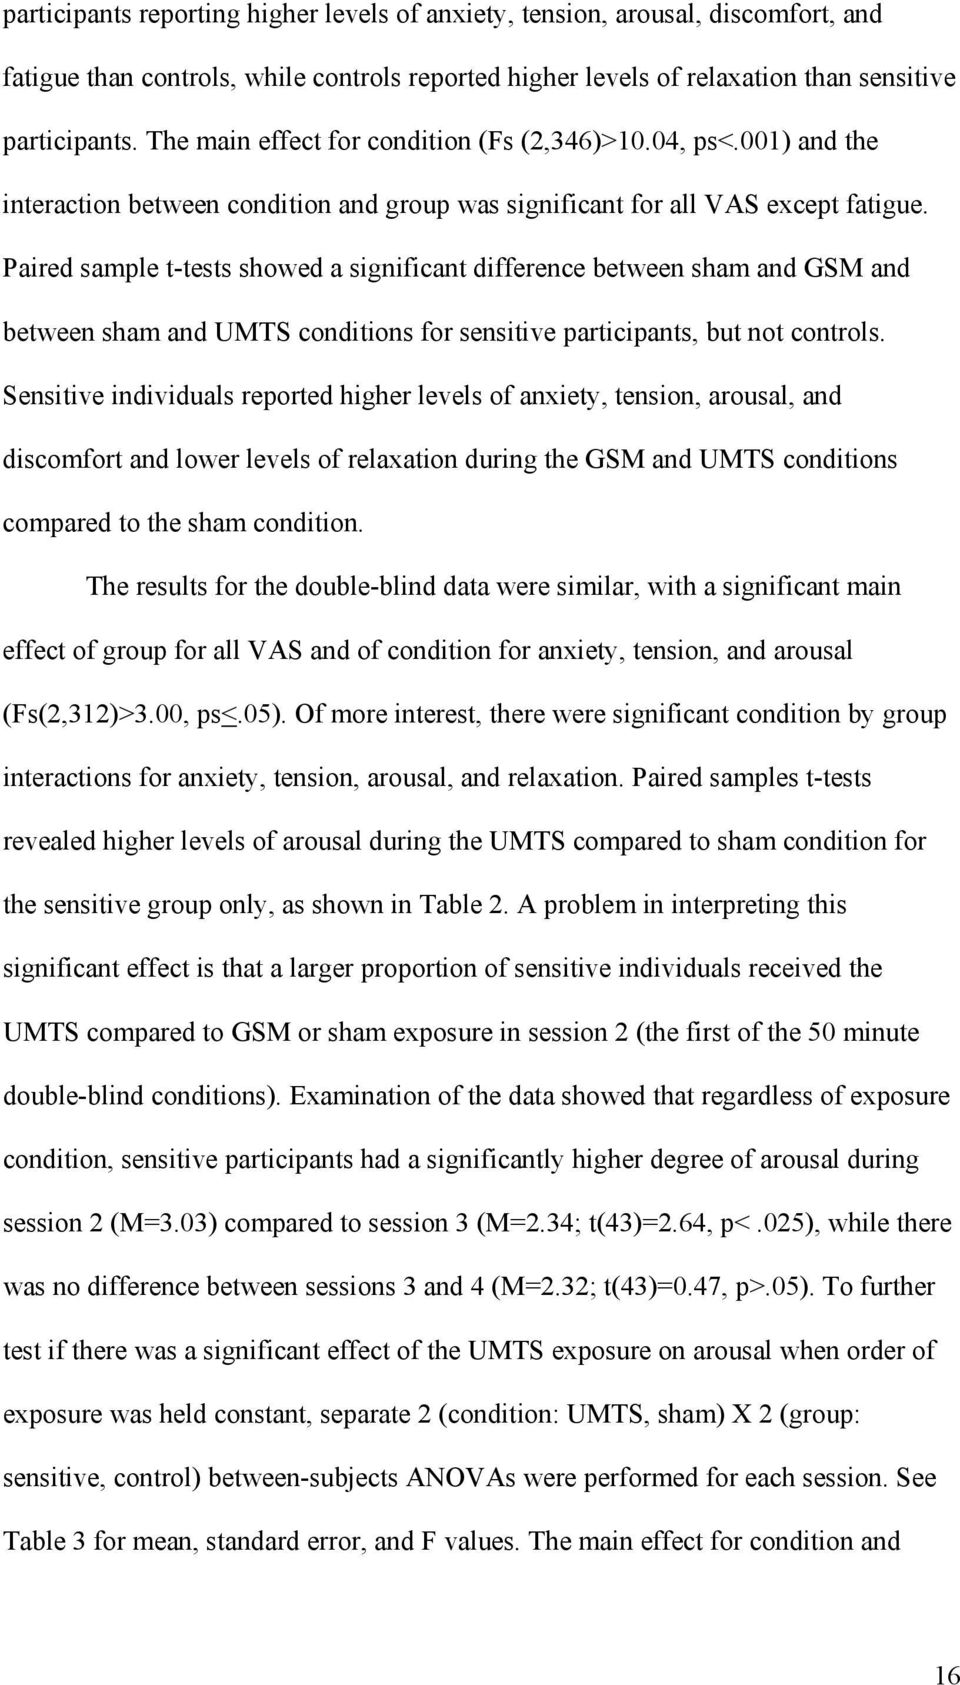 Paired sample t-tests showed a significant difference between sham and GSM and between sham and UMTS conditions for sensitive participants, but not controls.